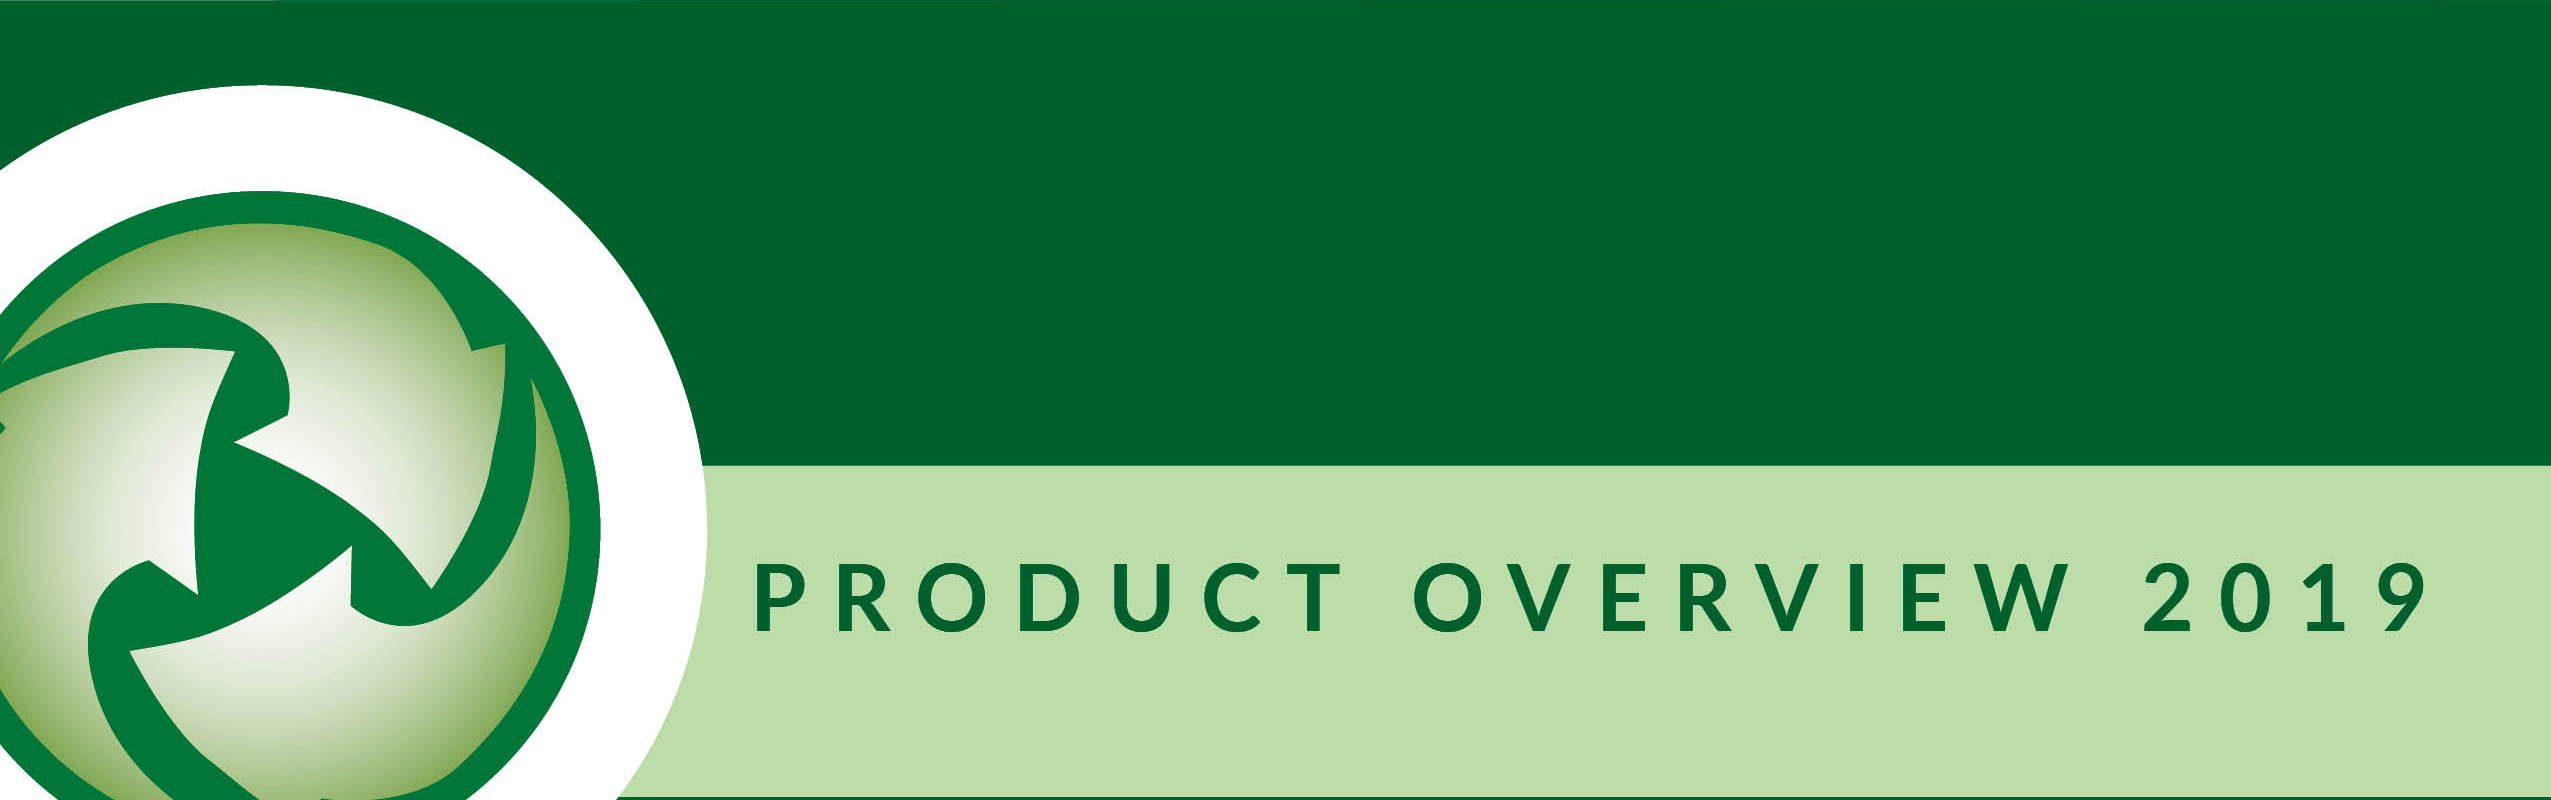 Adveco 2019 product brochure banner